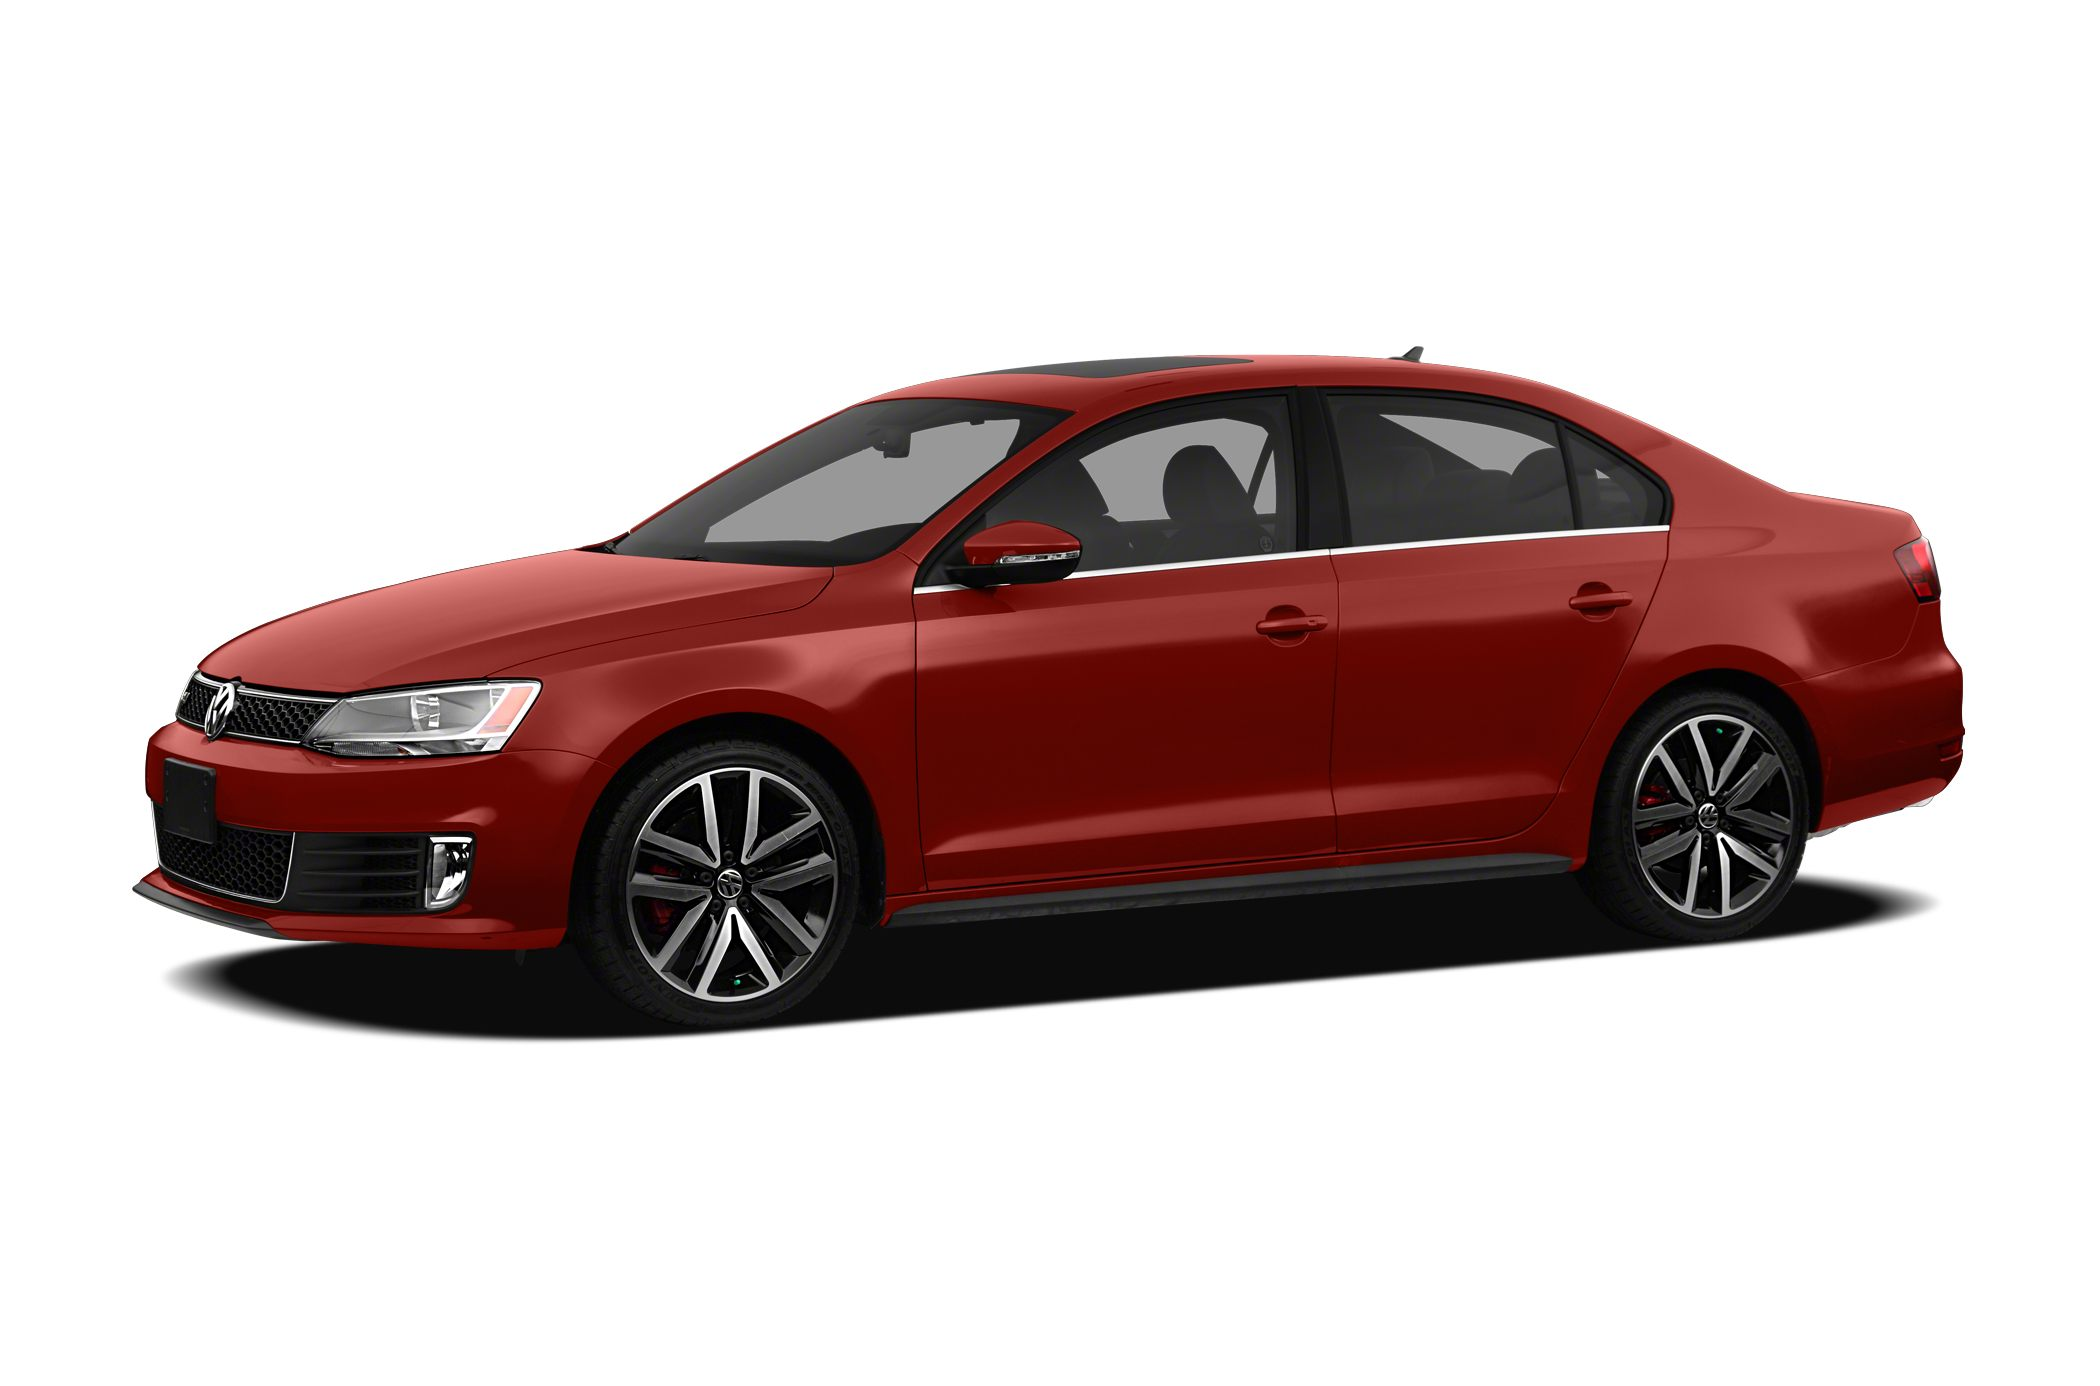 2012 Volkswagen Jetta GLI Sedan for sale in Meadville for $17,903 with 39,279 miles